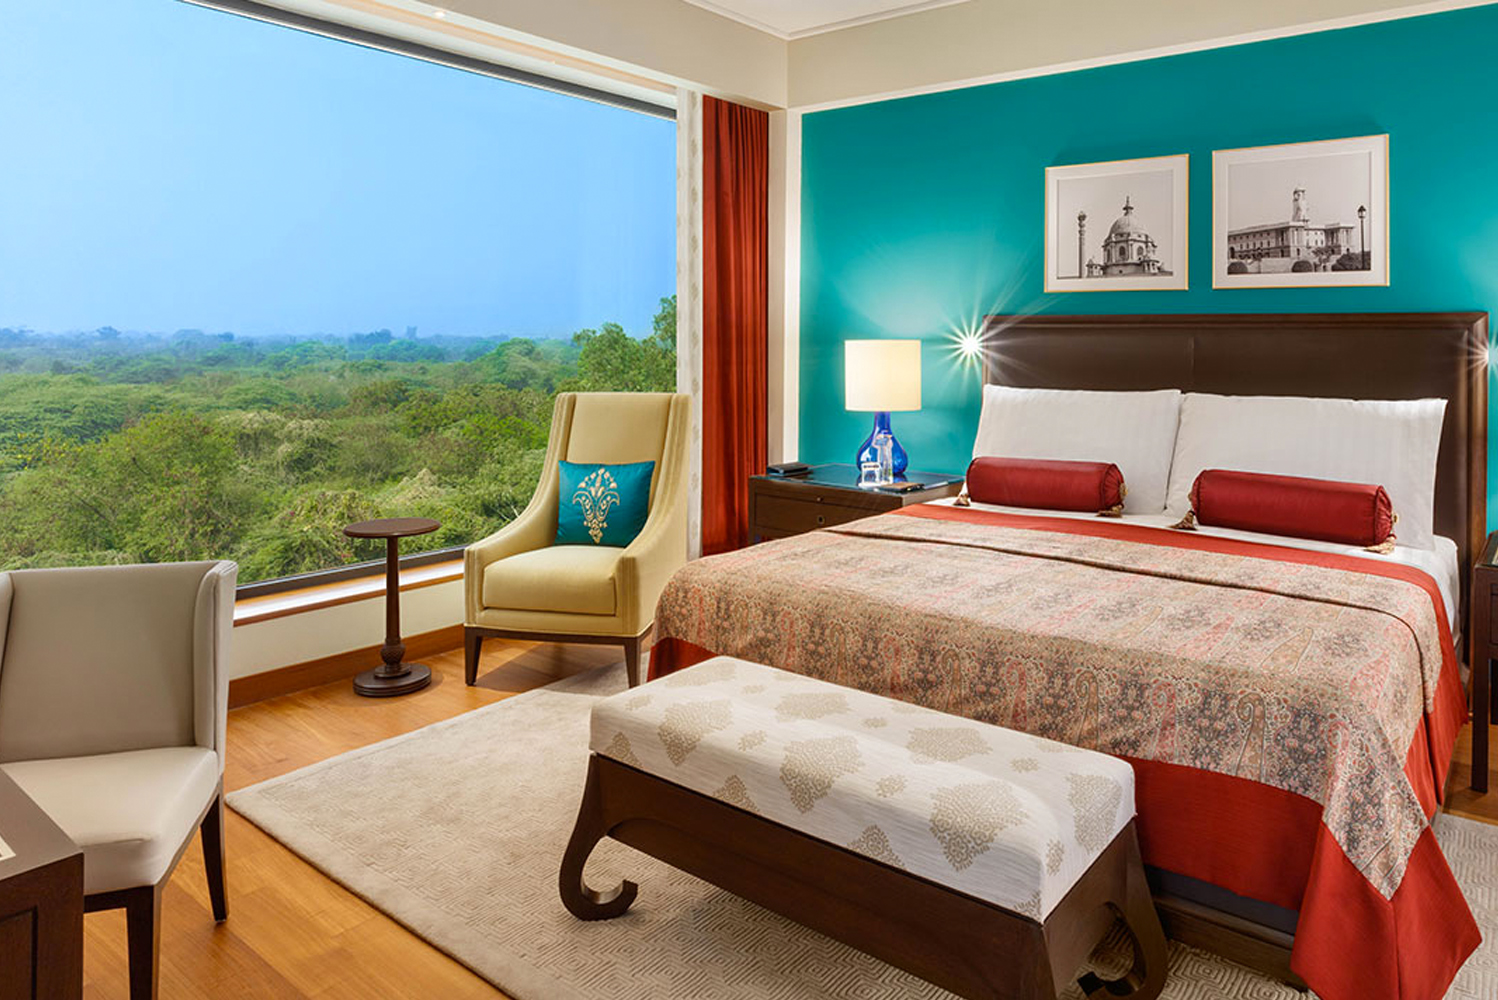 All rooms and suites have large windows that frame views of Delhi Golf Course on one side and the UNESCO World Heritage site of Humayun's Tomb on the other.